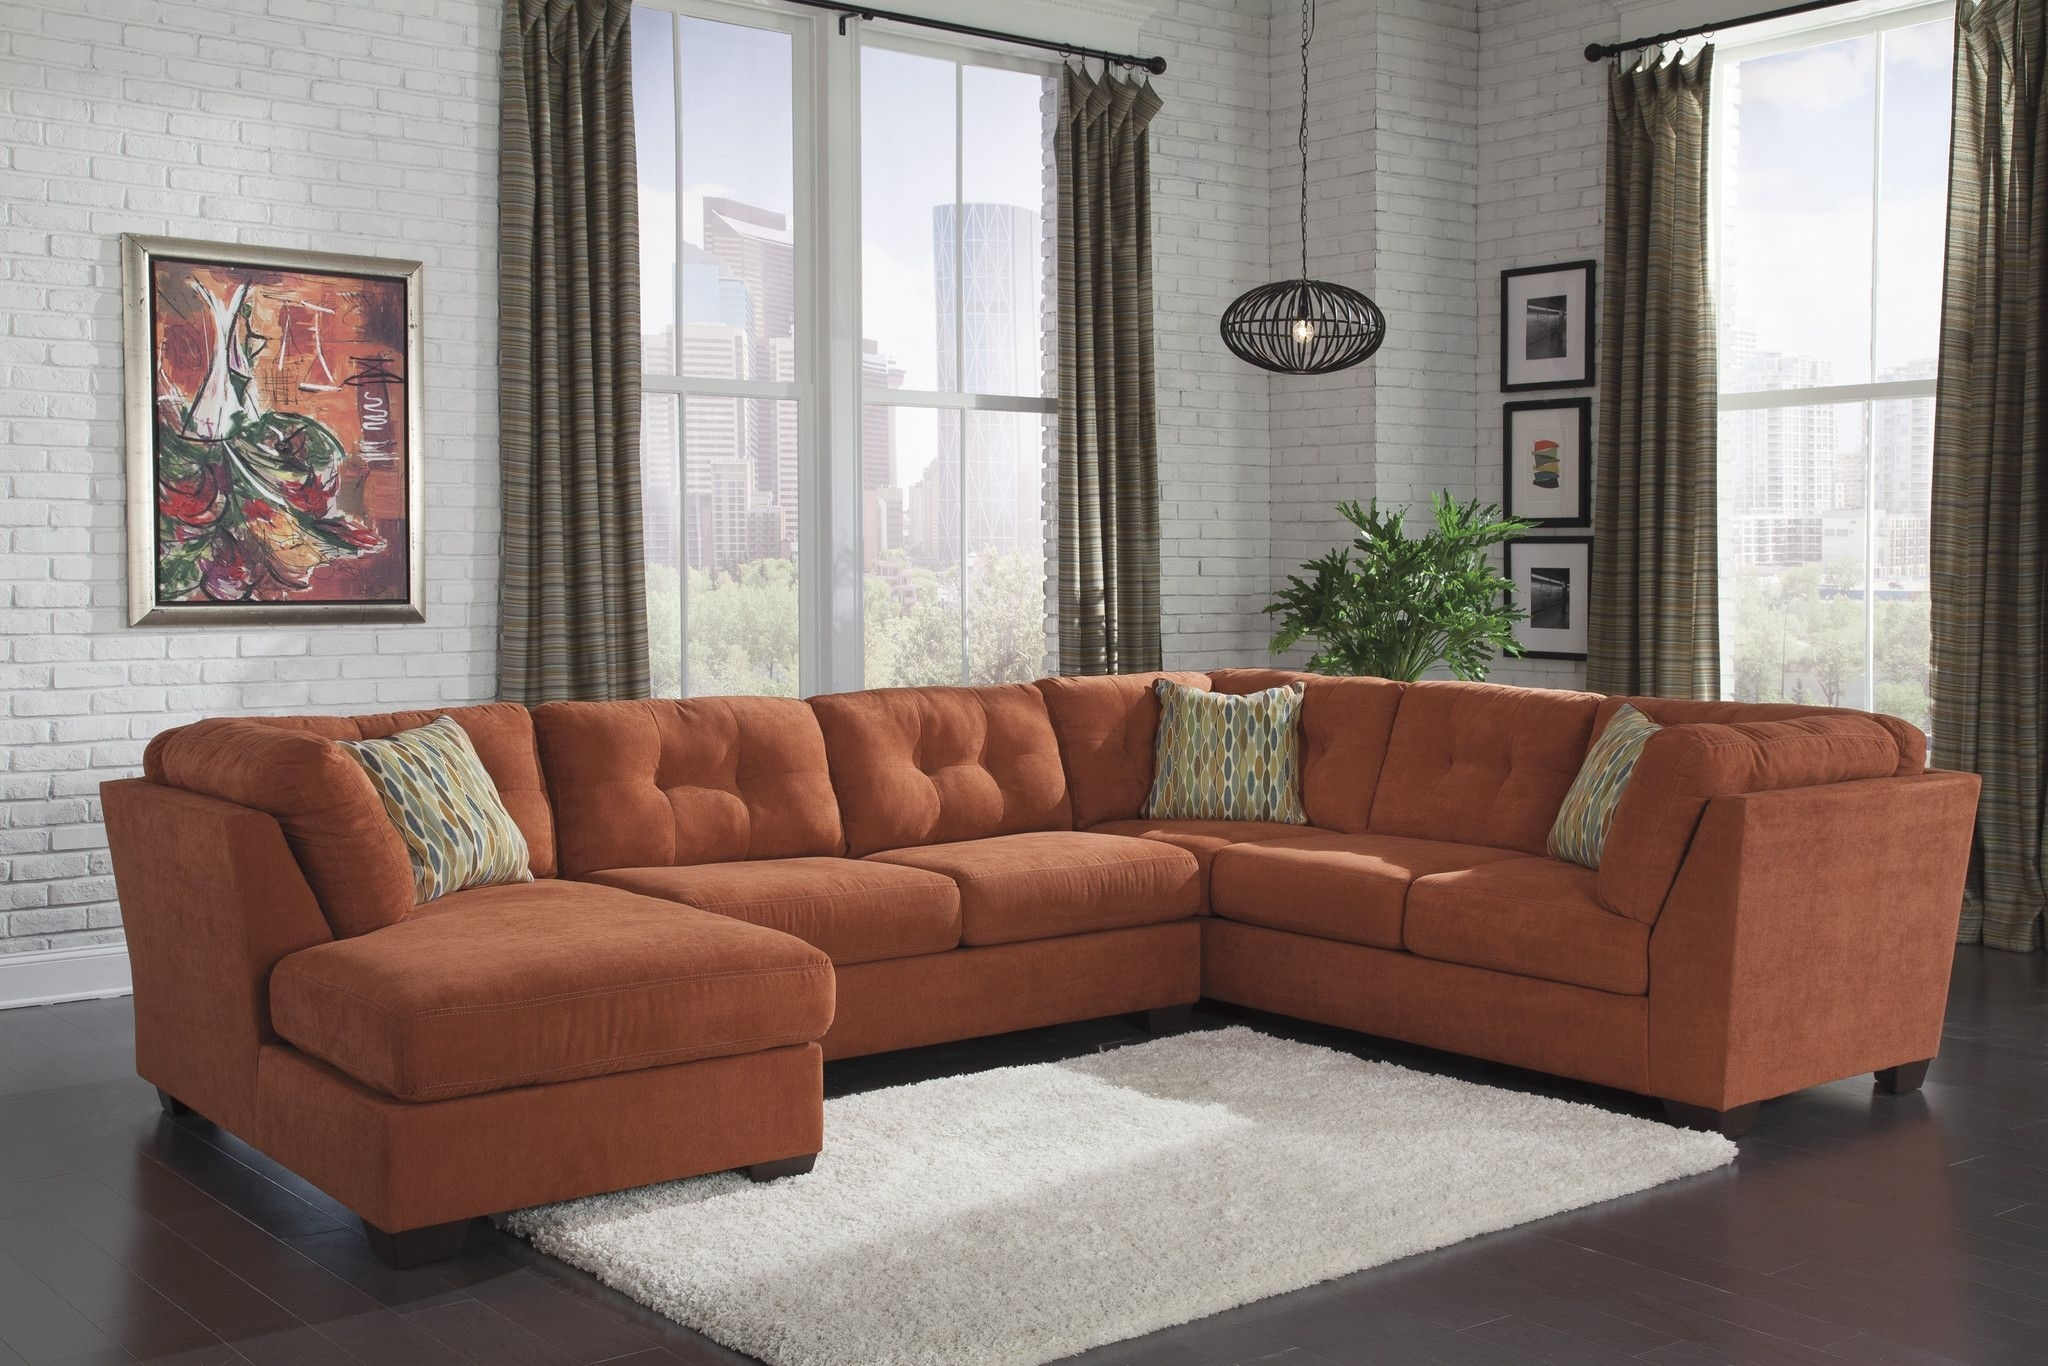 Ashley Furniture Delta City Orange Sectional Left 1970116+34+38 Regarding Turdur 3 Piece Sectionals With Raf Loveseat (View 16 of 25)